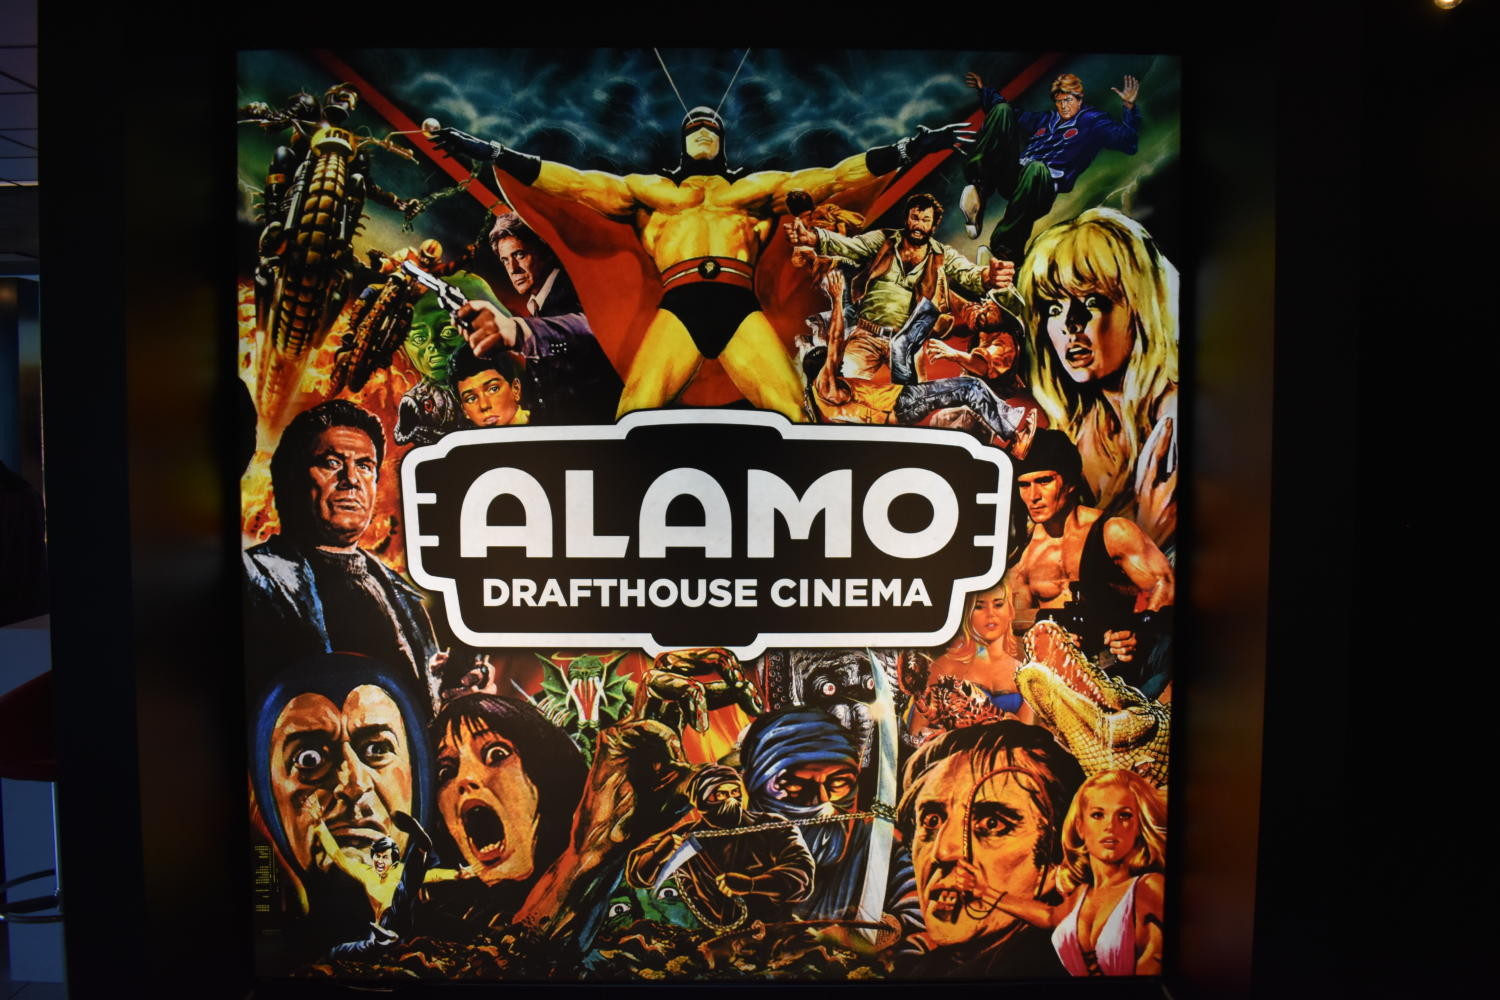 Poster for the Alamo Drafthouse